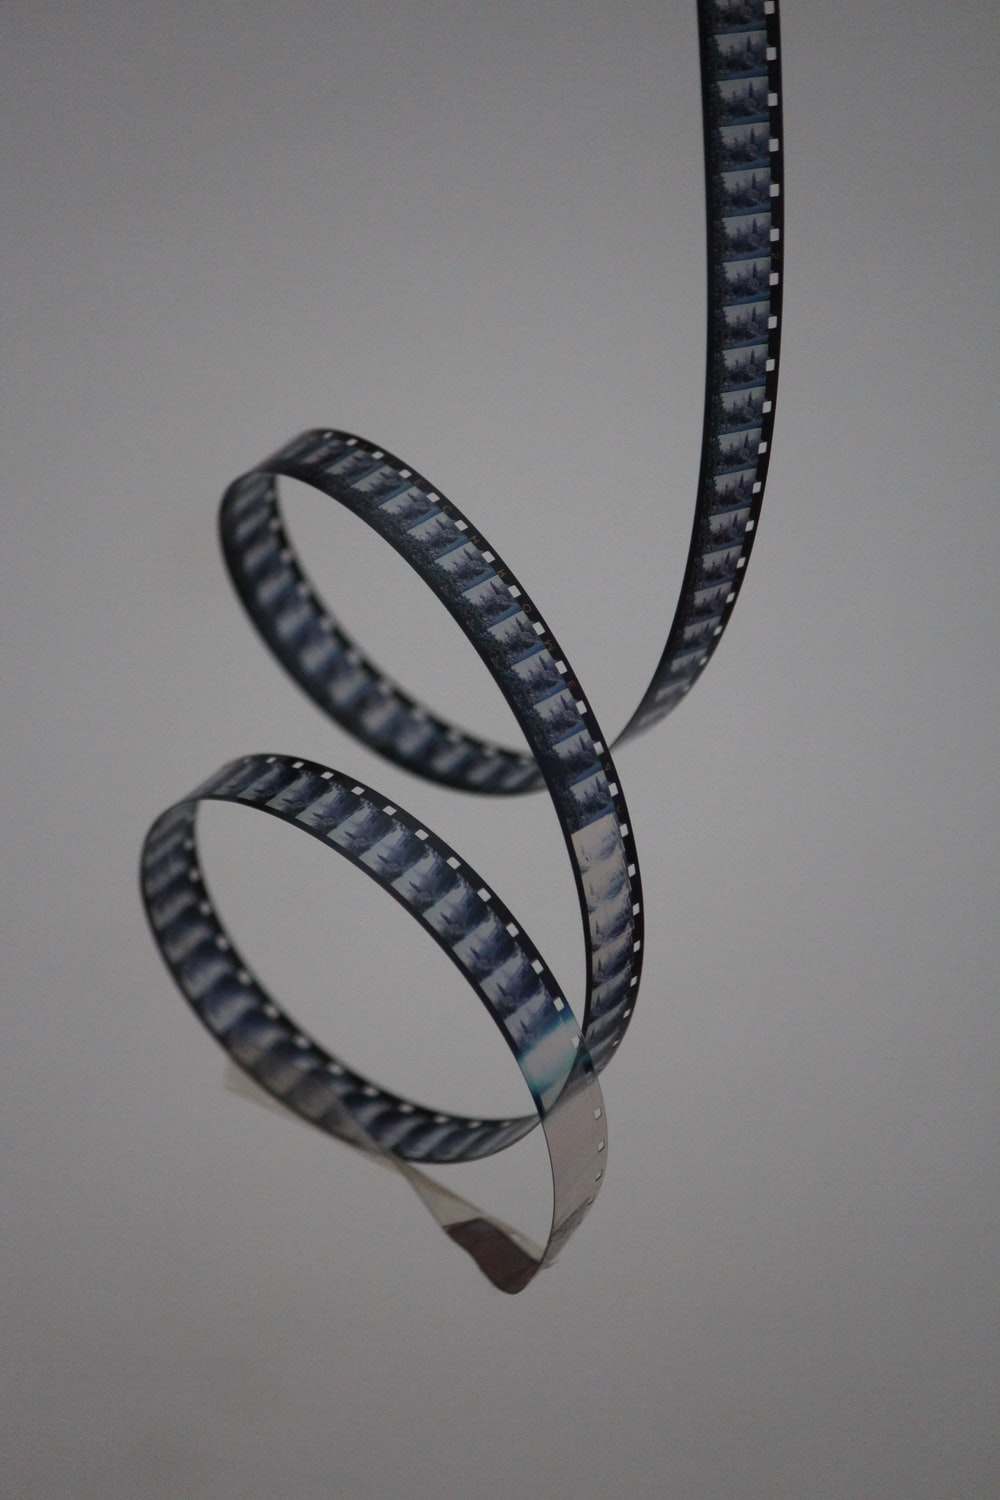 photography of camera reel film